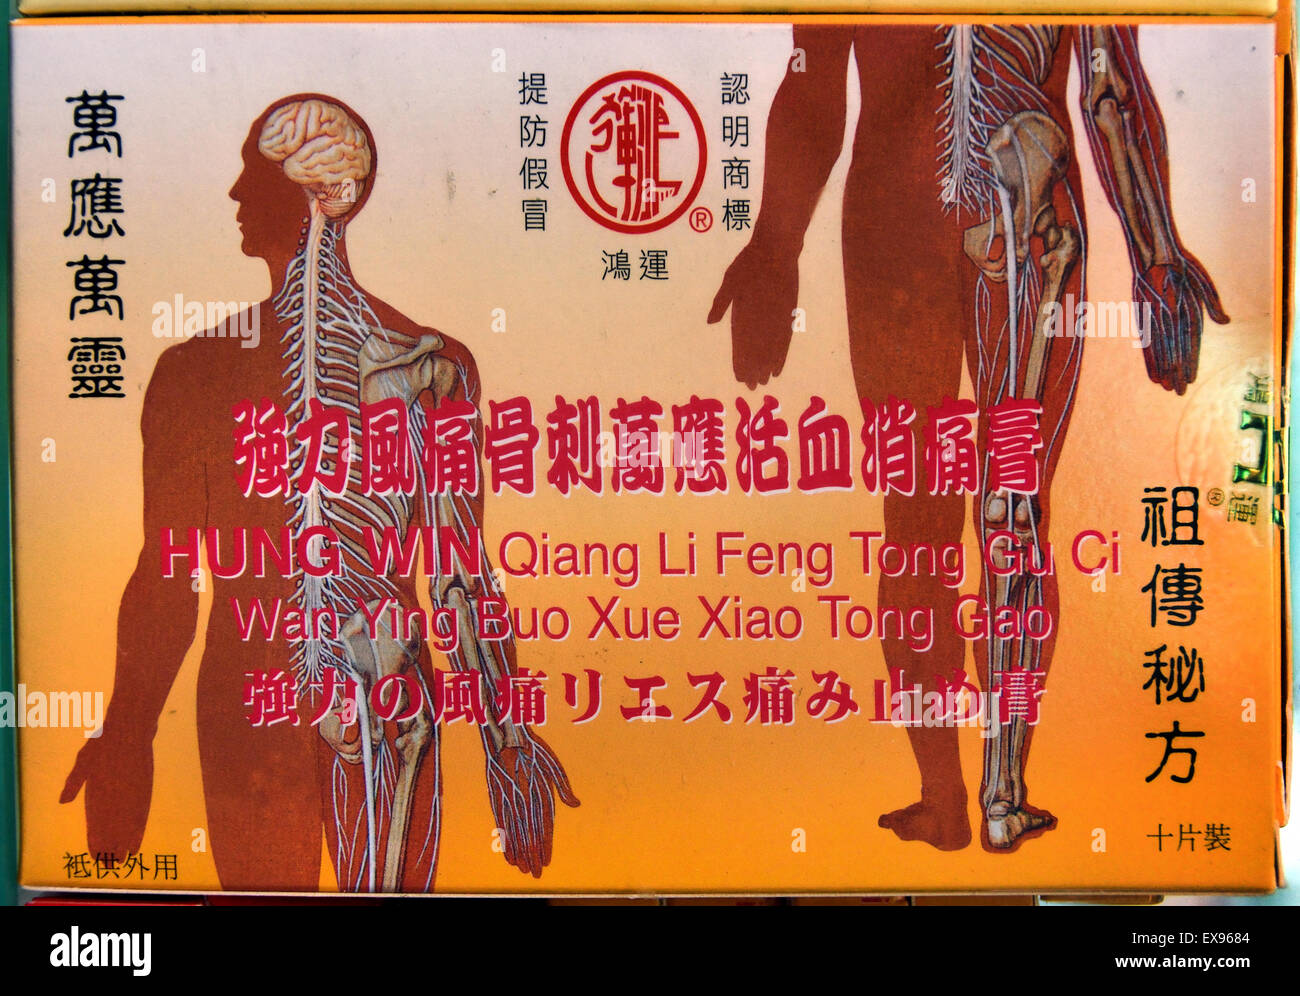 Showcase Chinese pharmacy casing alternative medicine Chinese China spine, vertebral column - Stock Image